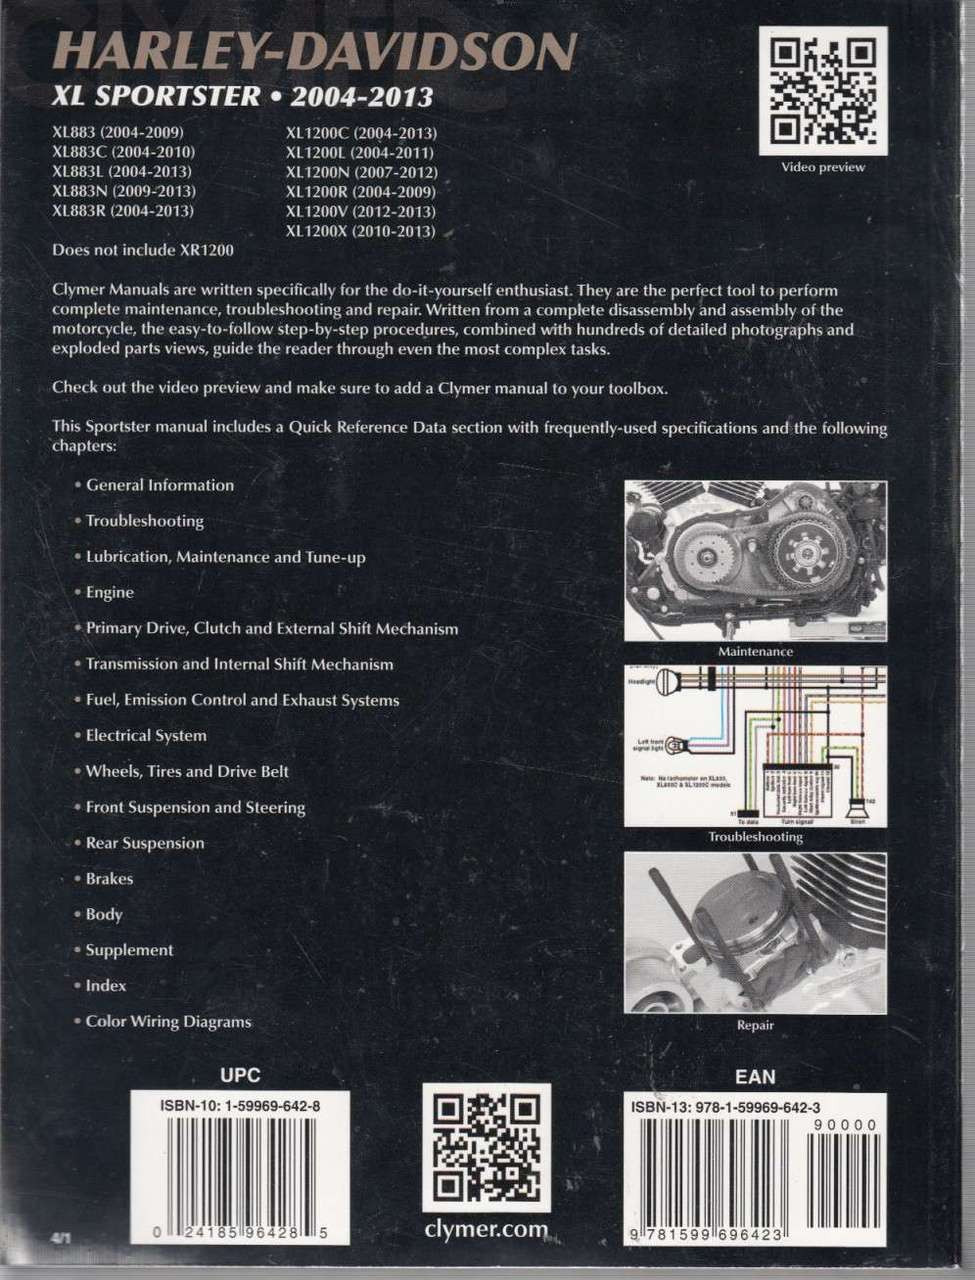 Harley Davidson Xl Sportster 2004 2013 Workshop Manual 2014 Xl1200v Wiring Diagram Back Cover